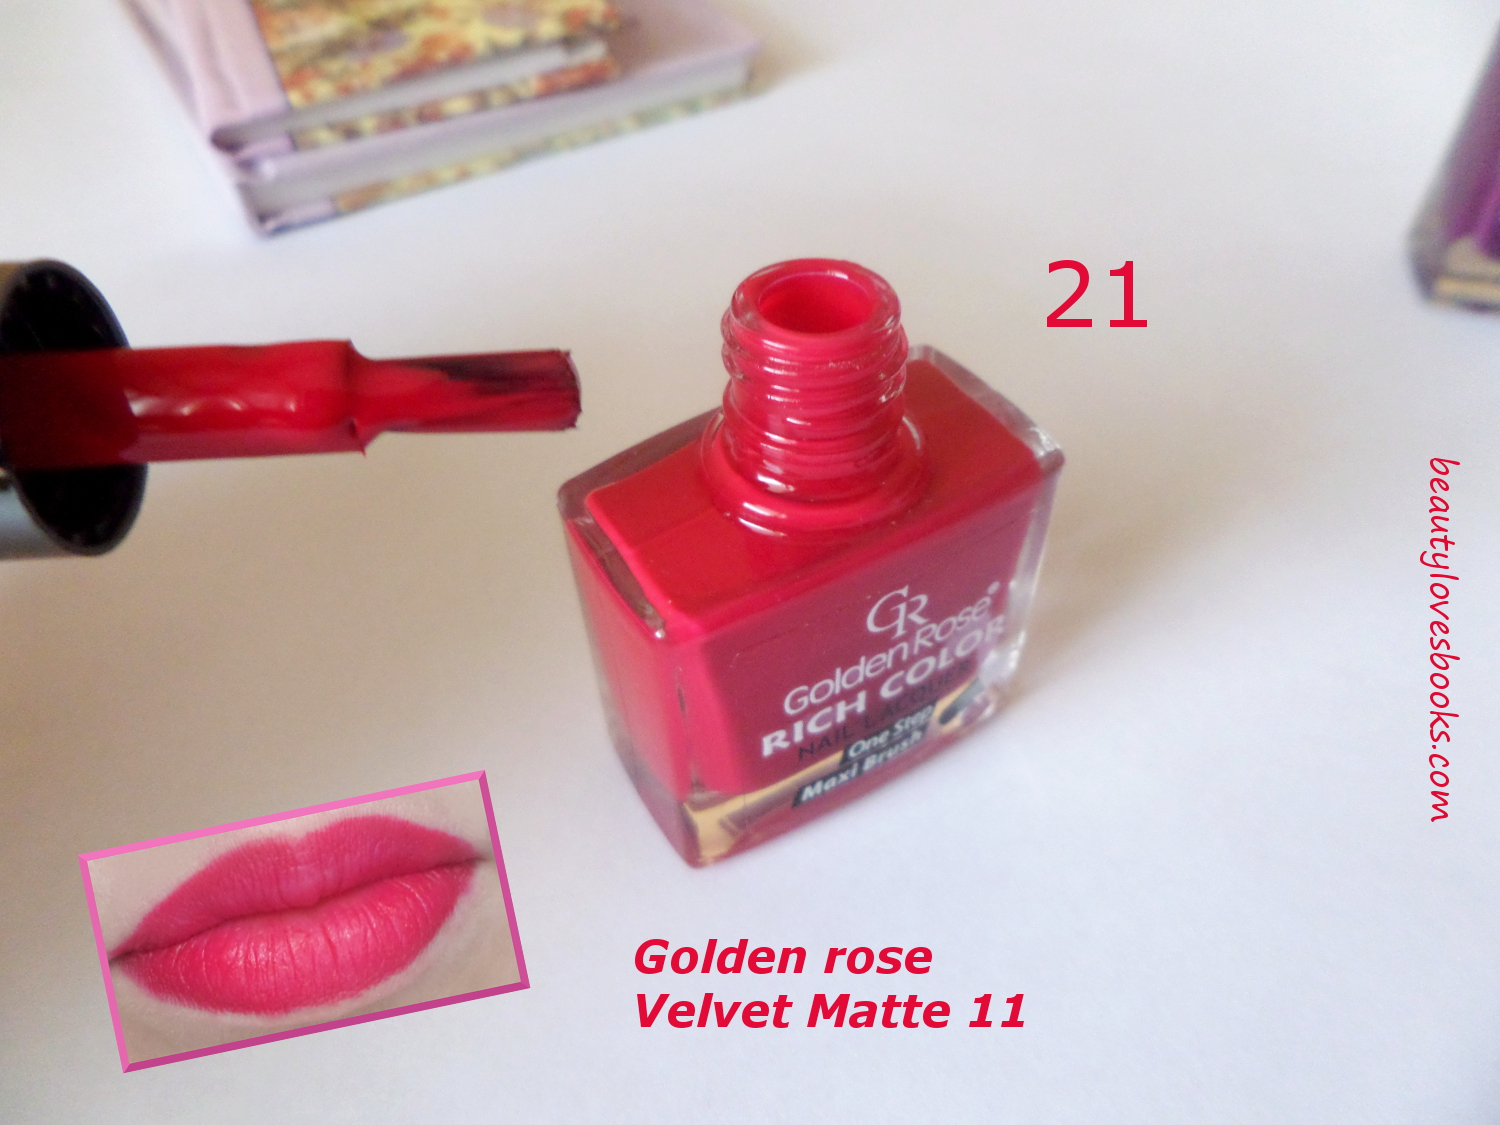 Golden rose Velvet matte lipstick 11 swatch and Golden rose Rich color nail polish in 21